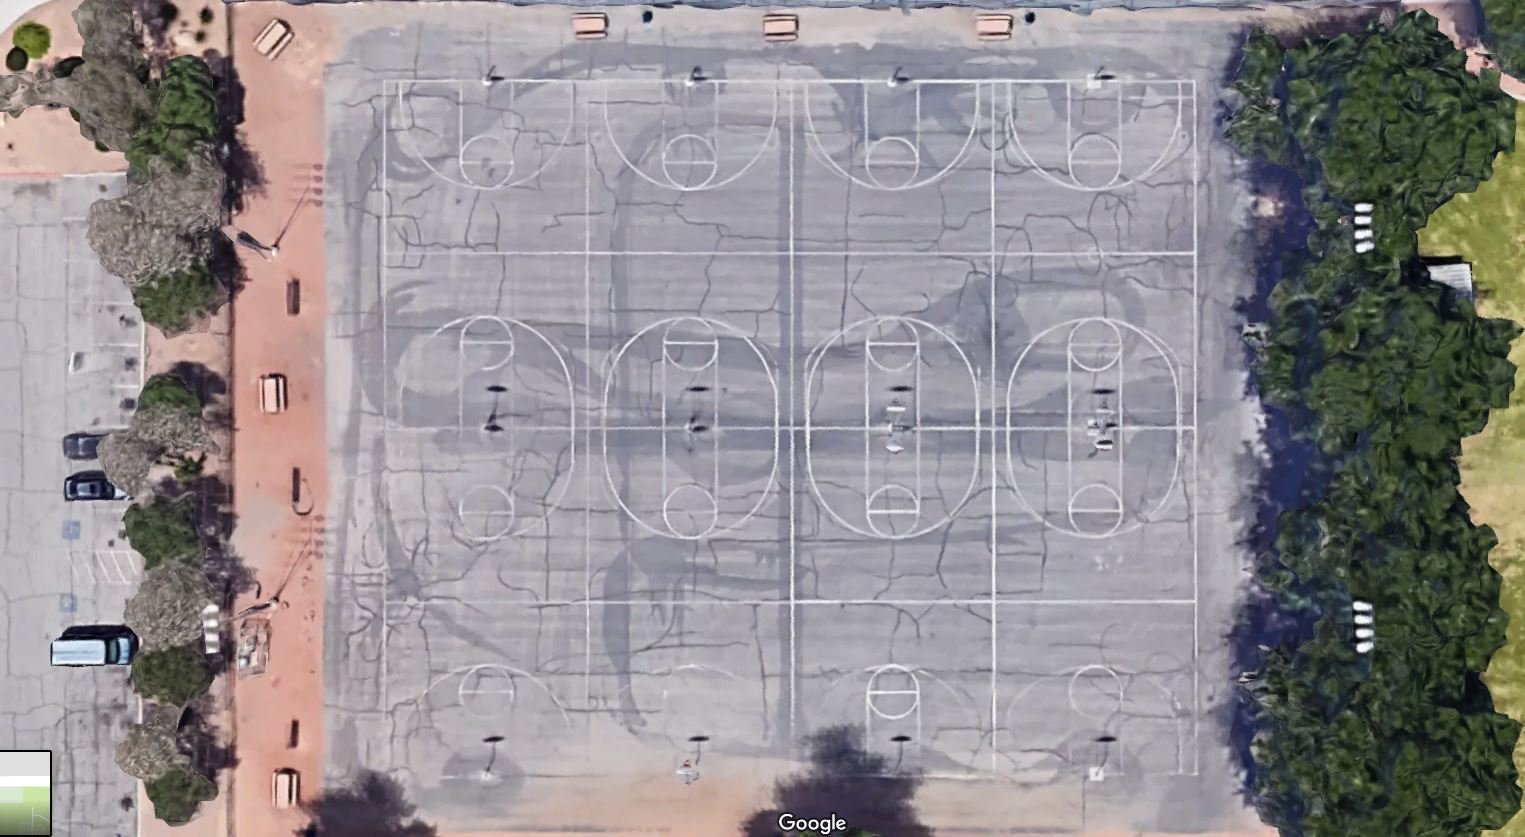 Before this week, Sunset Park's basketball court had a dangerous surface with many cracks and temporary repairs. (Photo: Google)